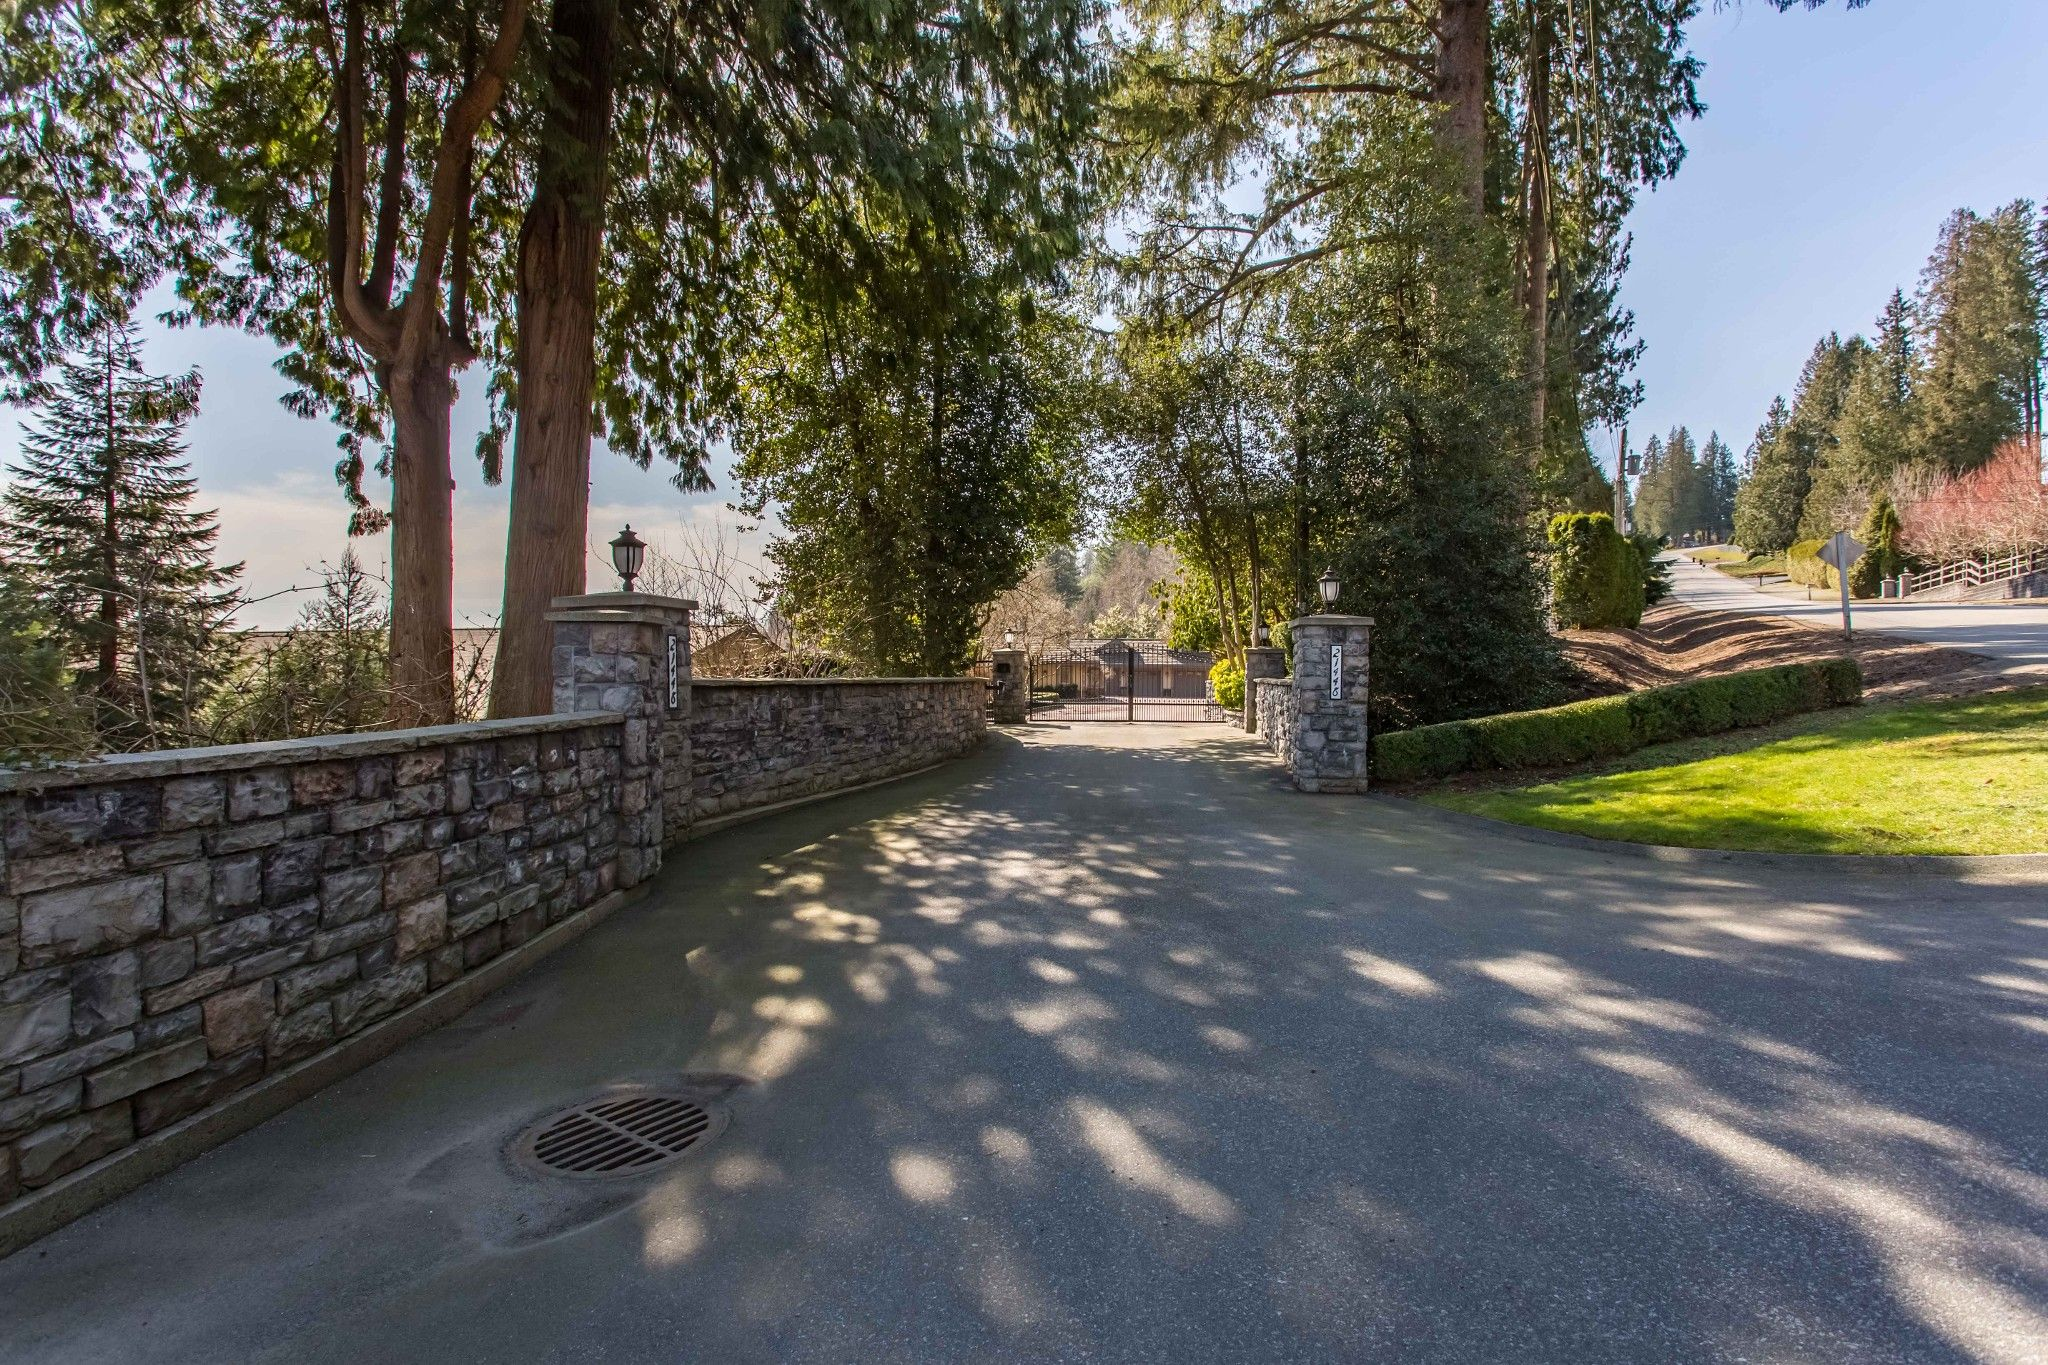 """Main Photo: 21446 76 Avenue in Langley: Willoughby Heights House for sale in """"Willoughby Heights"""" : MLS®# R2405321"""